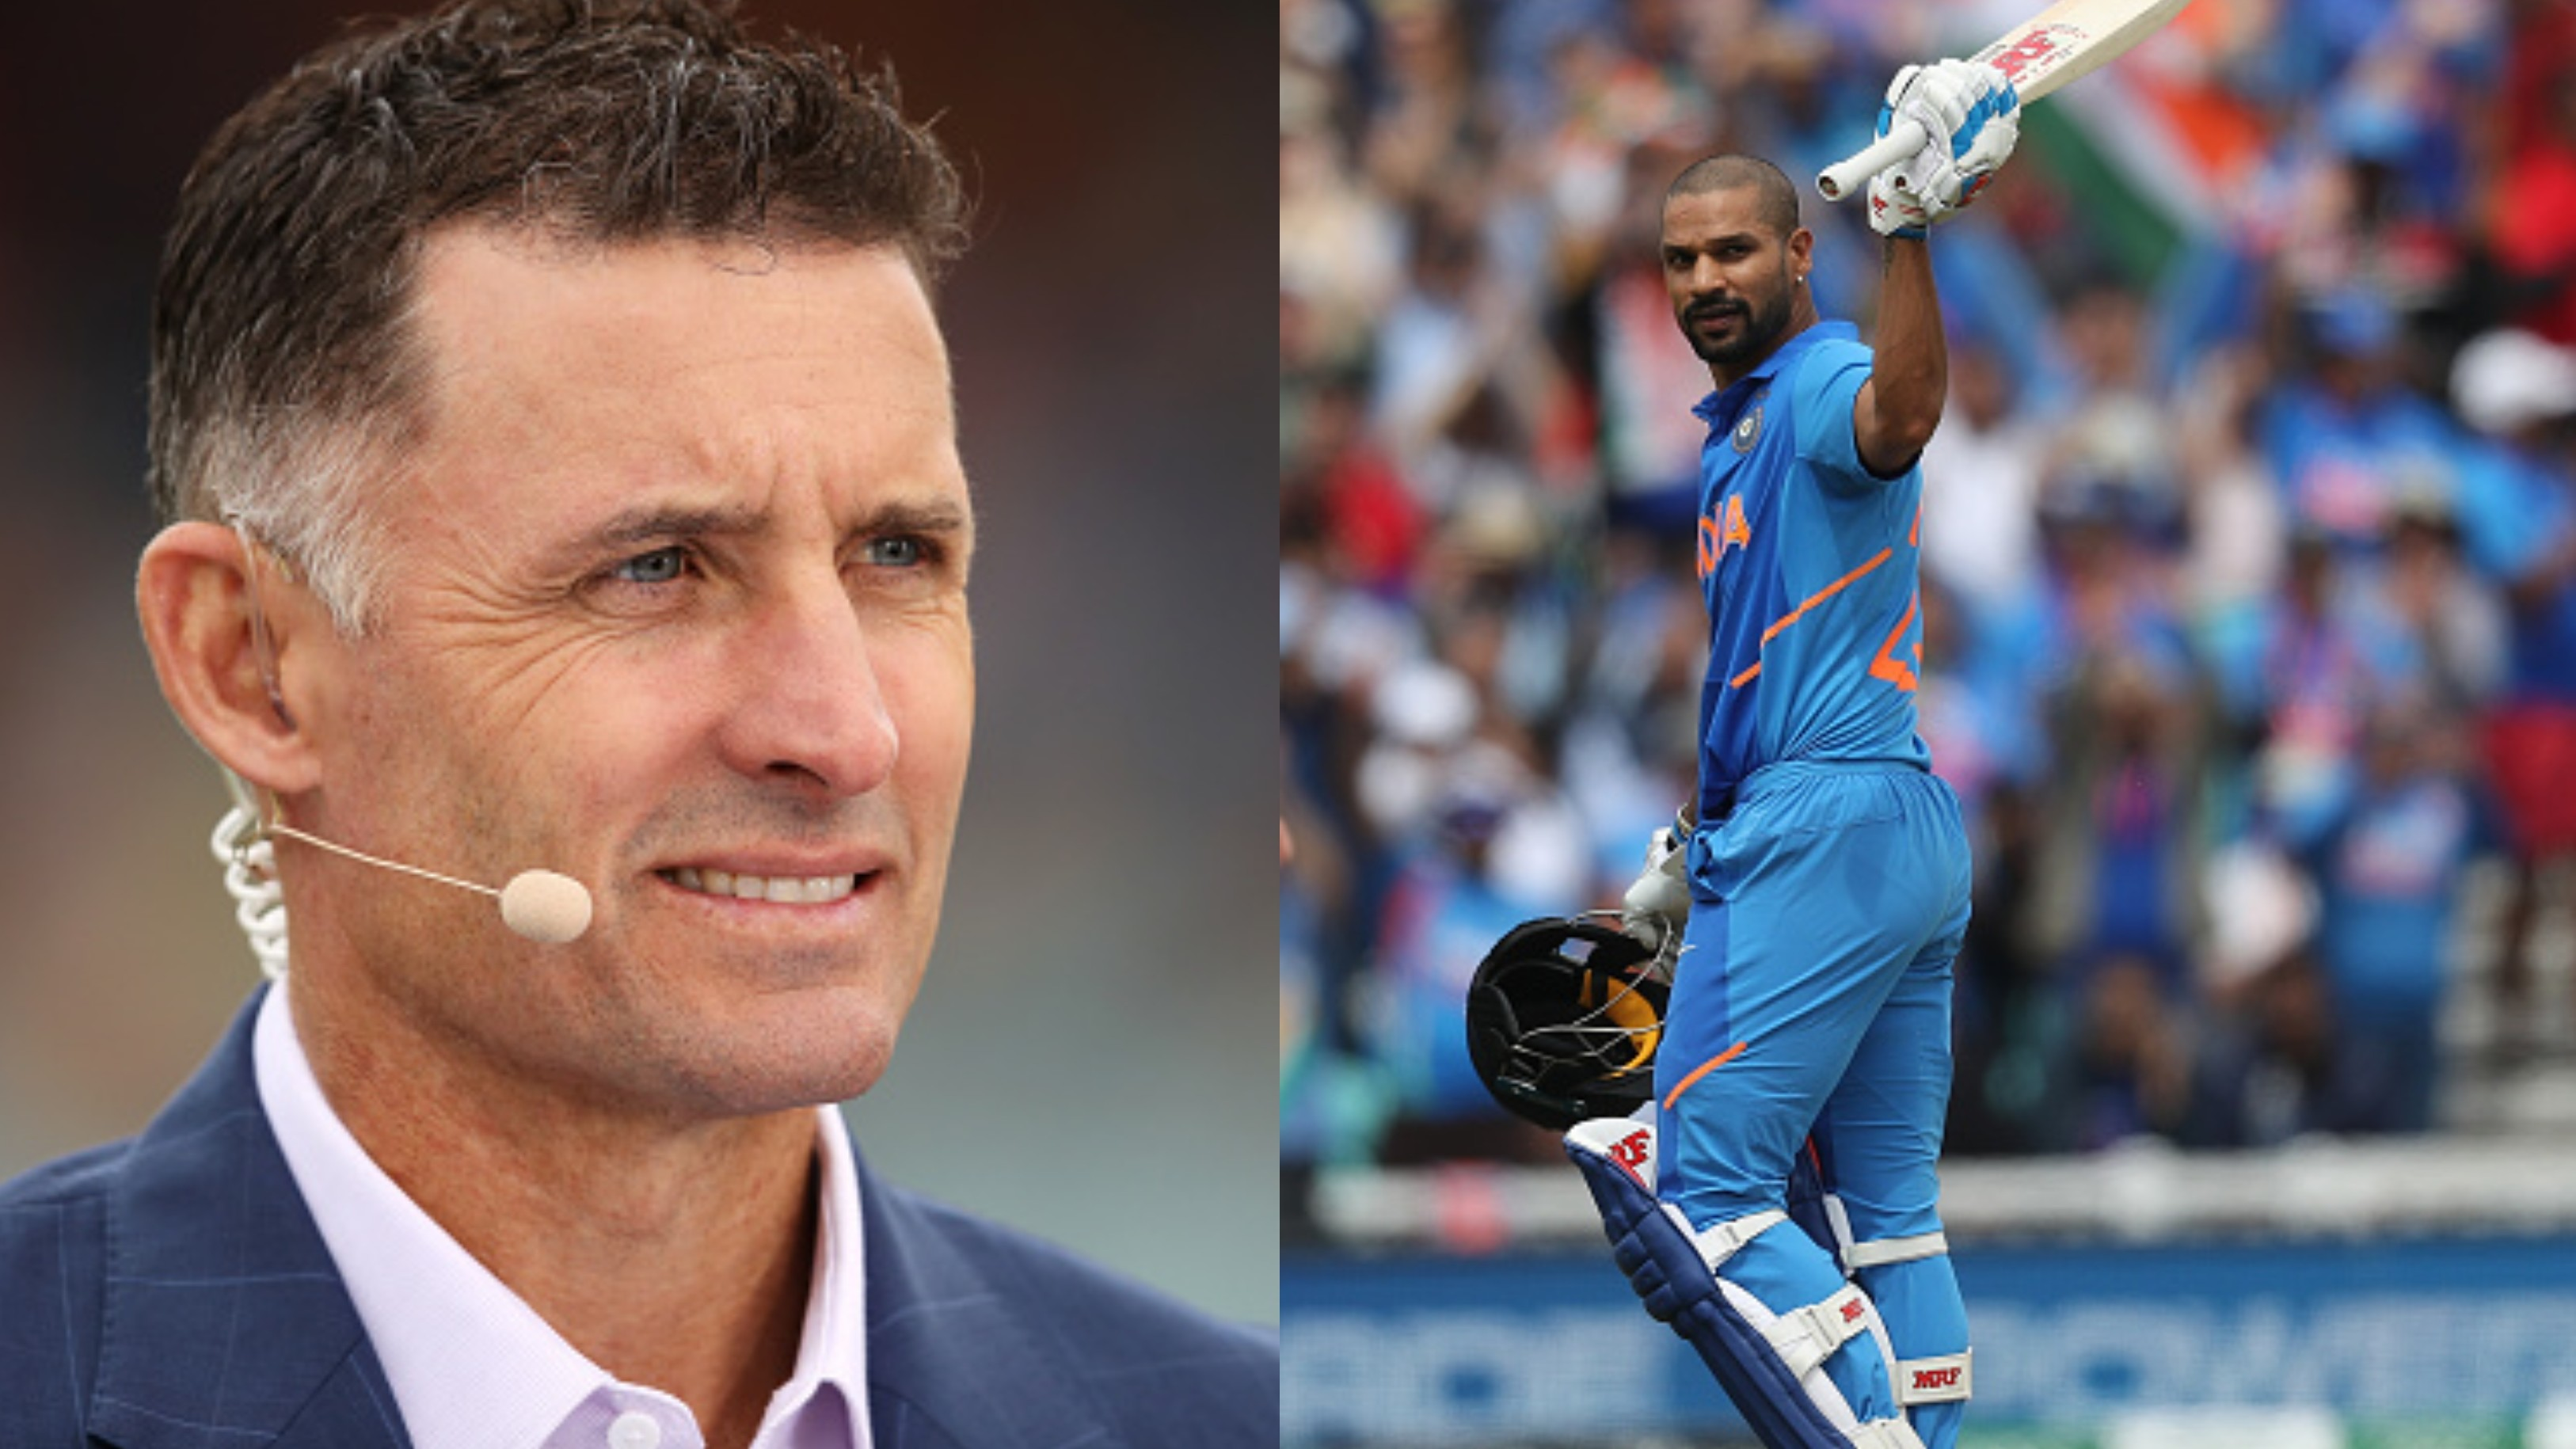 CWC 2019: Shikhar Dhawan's loss will not derail India's World Cup campaign, feels Michael Hussey